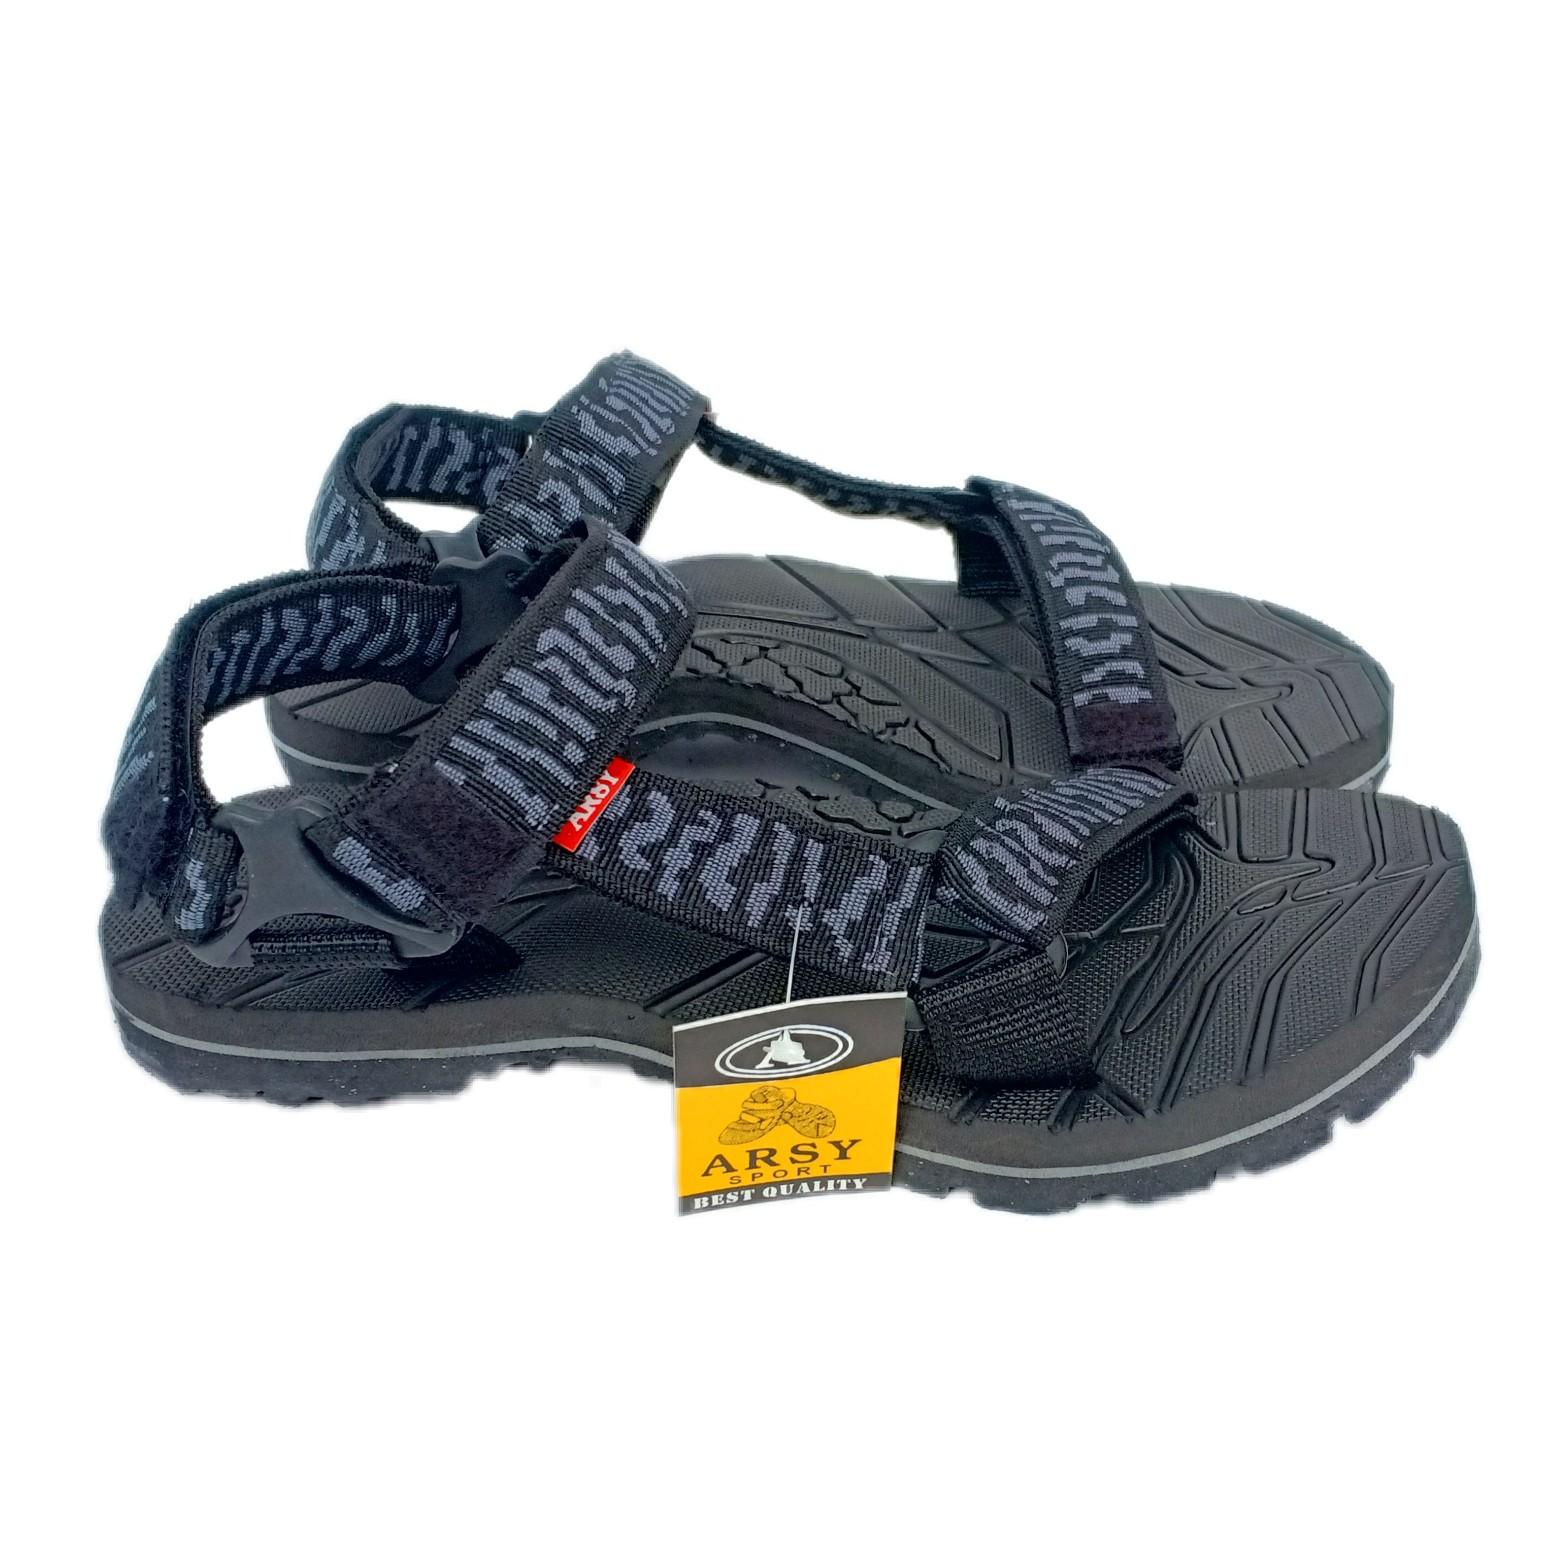 Arsy Exclusive Sandal Gunung / Sandal Outdoor Best Quality - Motip Silfer